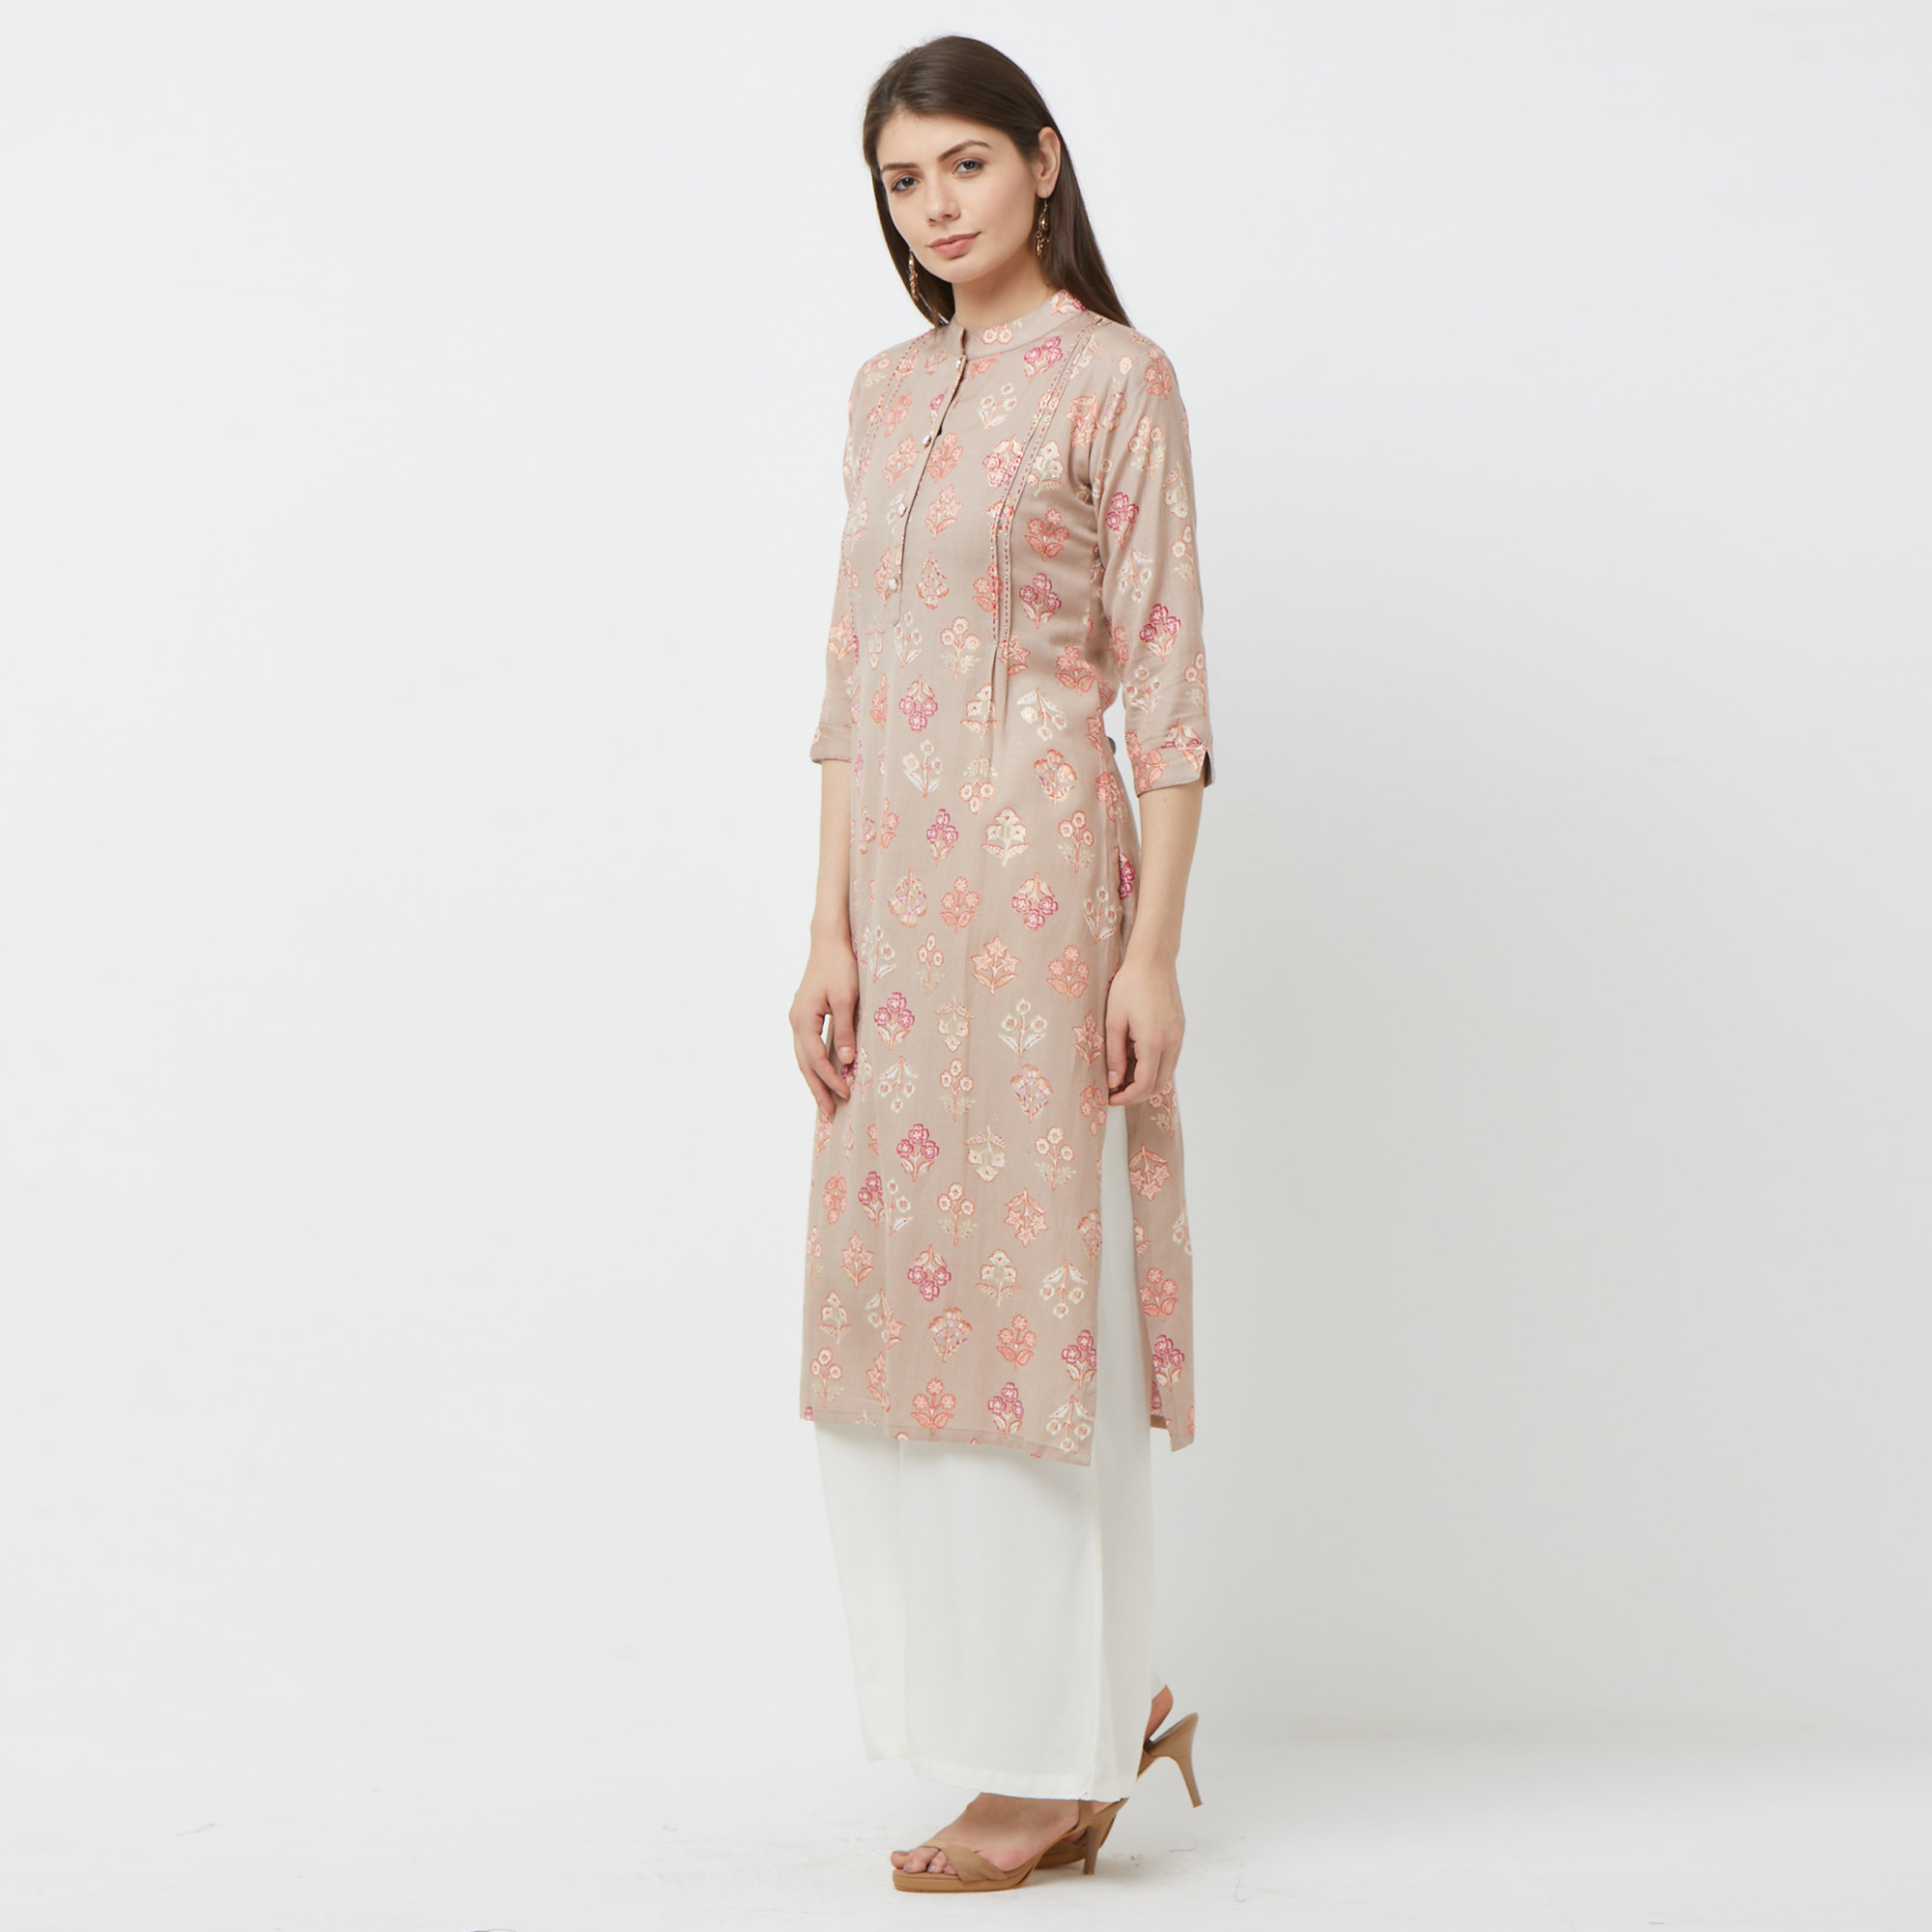 Mesmerising Light Brown Colored Partywear Embroidered Cotton Kurti-Palazzo Set